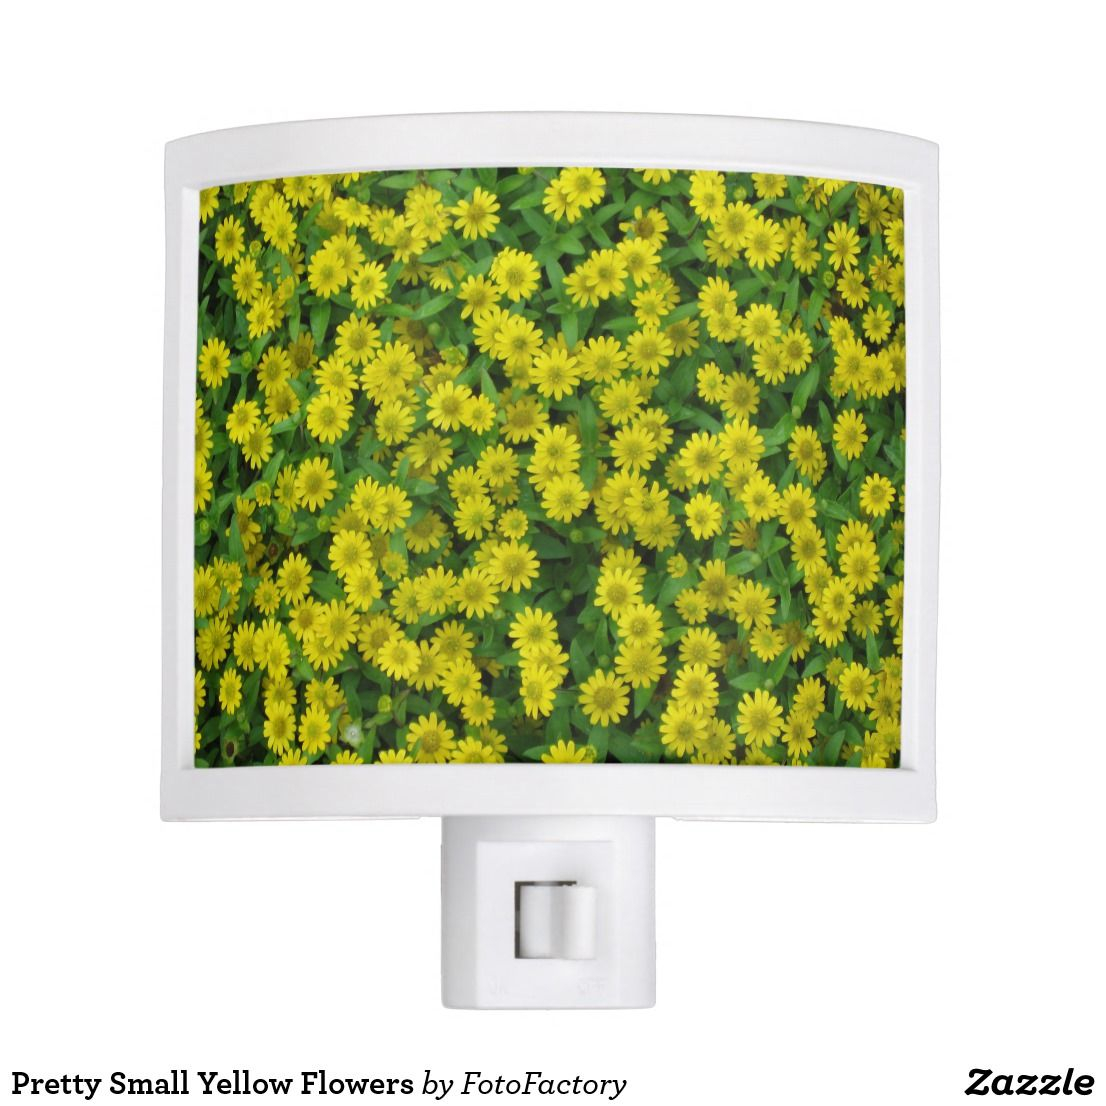 Pretty Small Yellow Flowers Night Light Flowers And Foliage